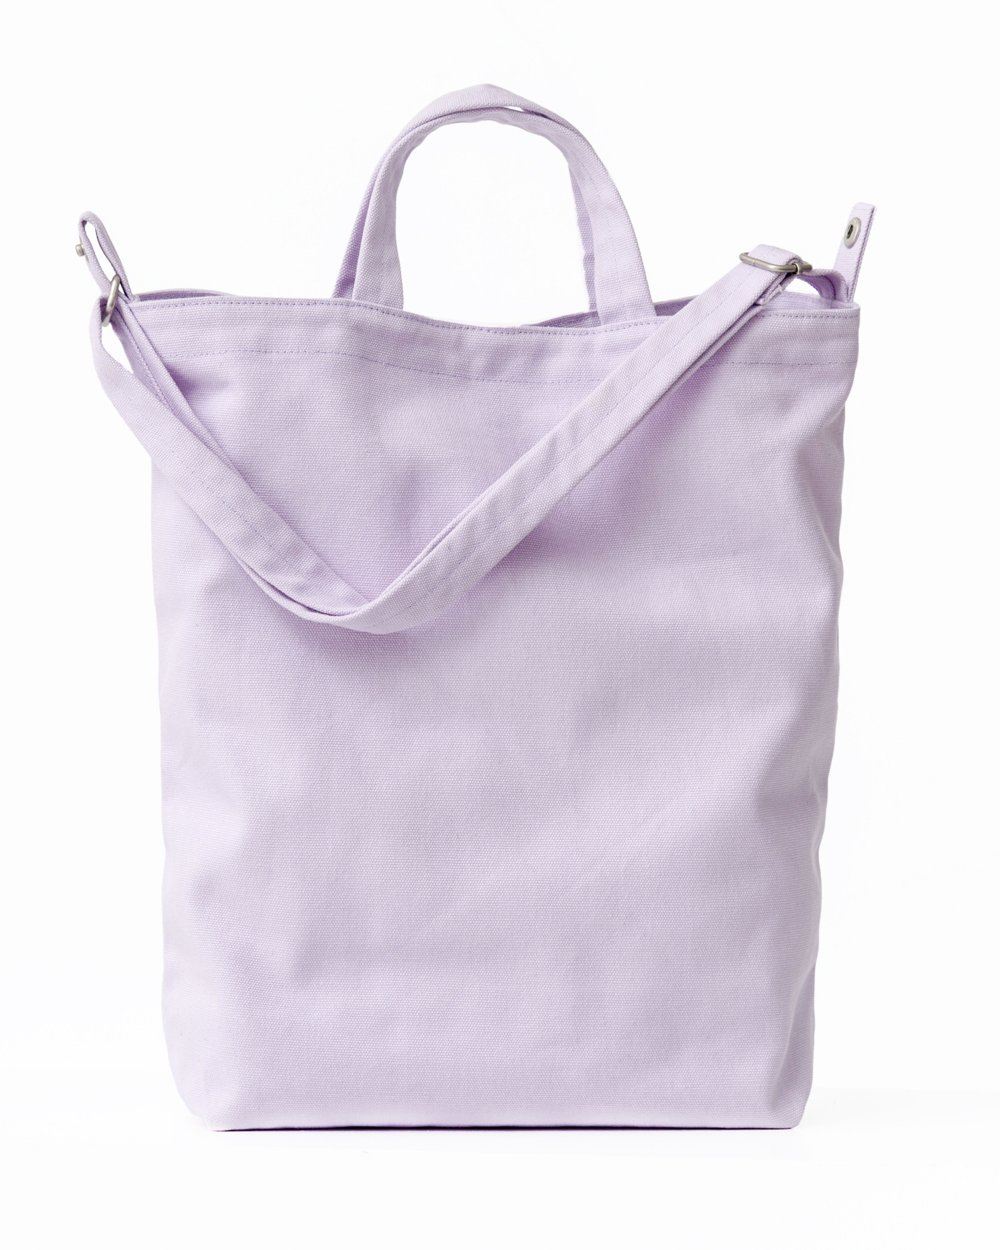 BAGGU Duck Bag Canvas Tote, Essential Everyday Tote, Spacious and Roomy, Lilac